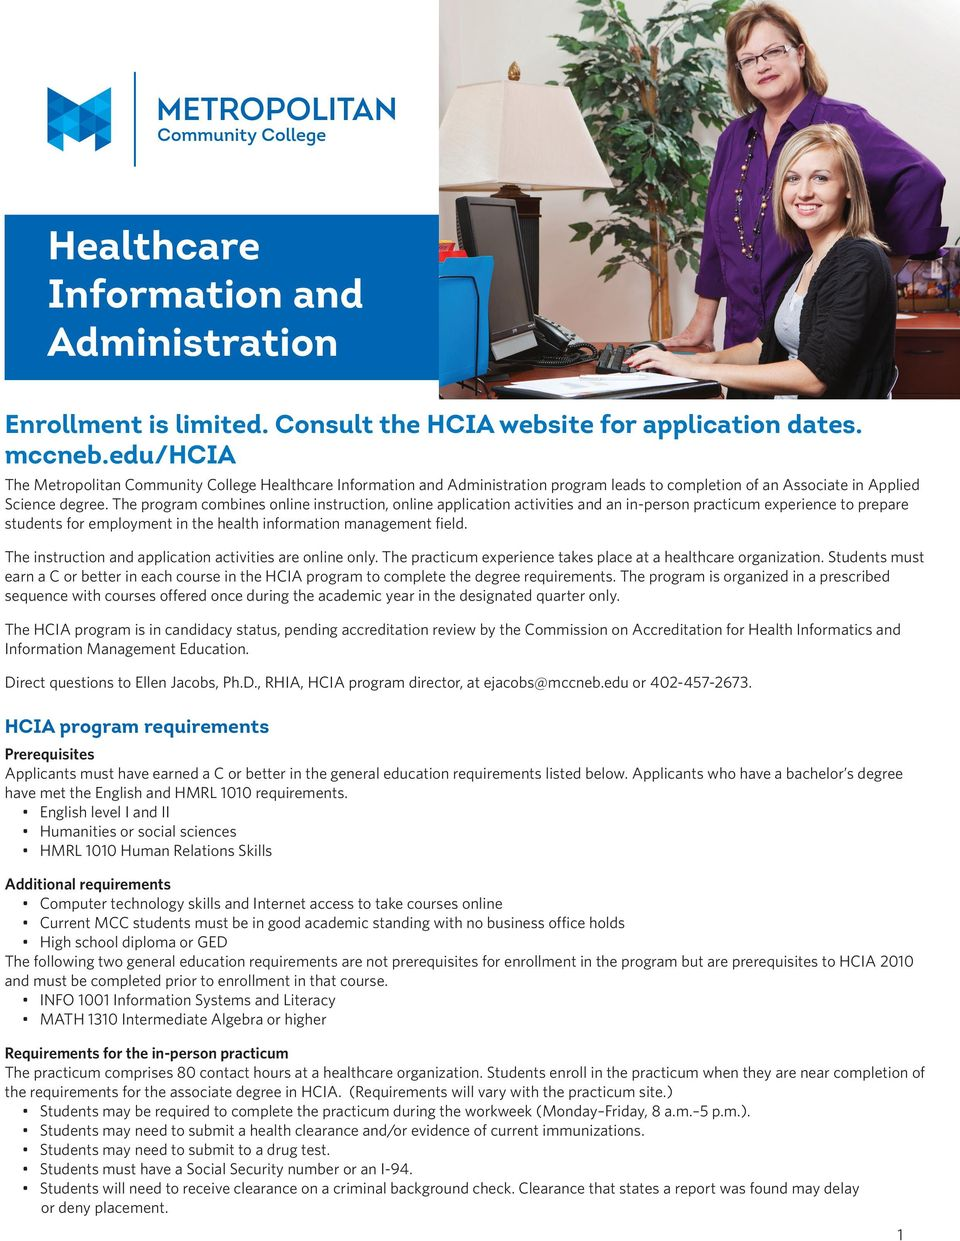 The program combines online instruction, online application activities and an in-person practicum experience to prepare students for employment in the health information management field.